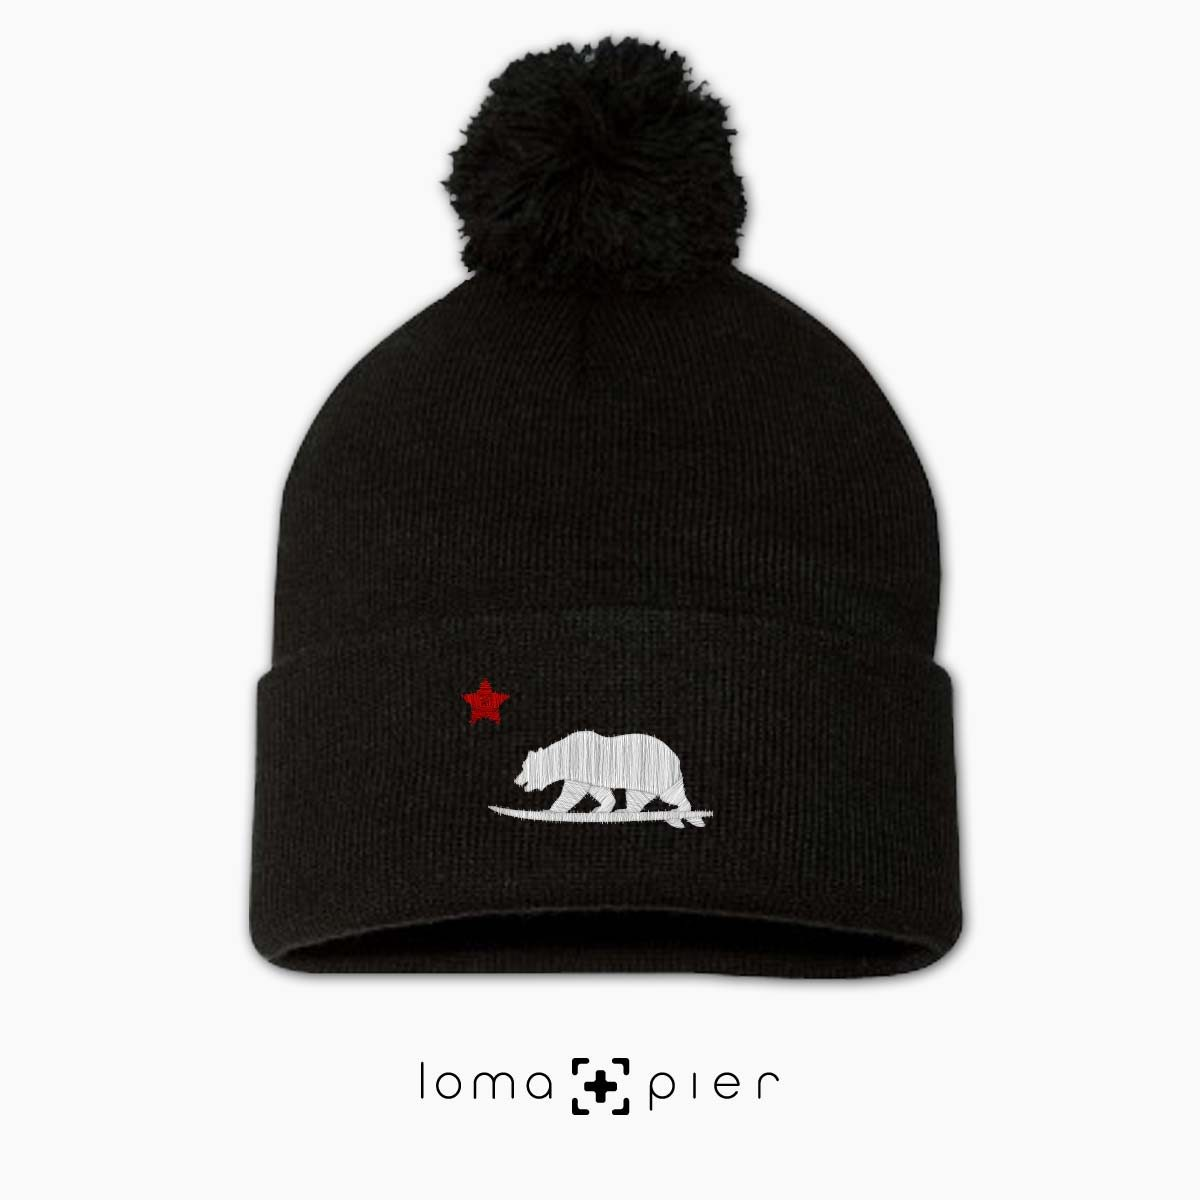 CALIFORNIA BEAR SURFING icon embroidered on a black pom pom beanie with white and red thread by loma+pier hat store